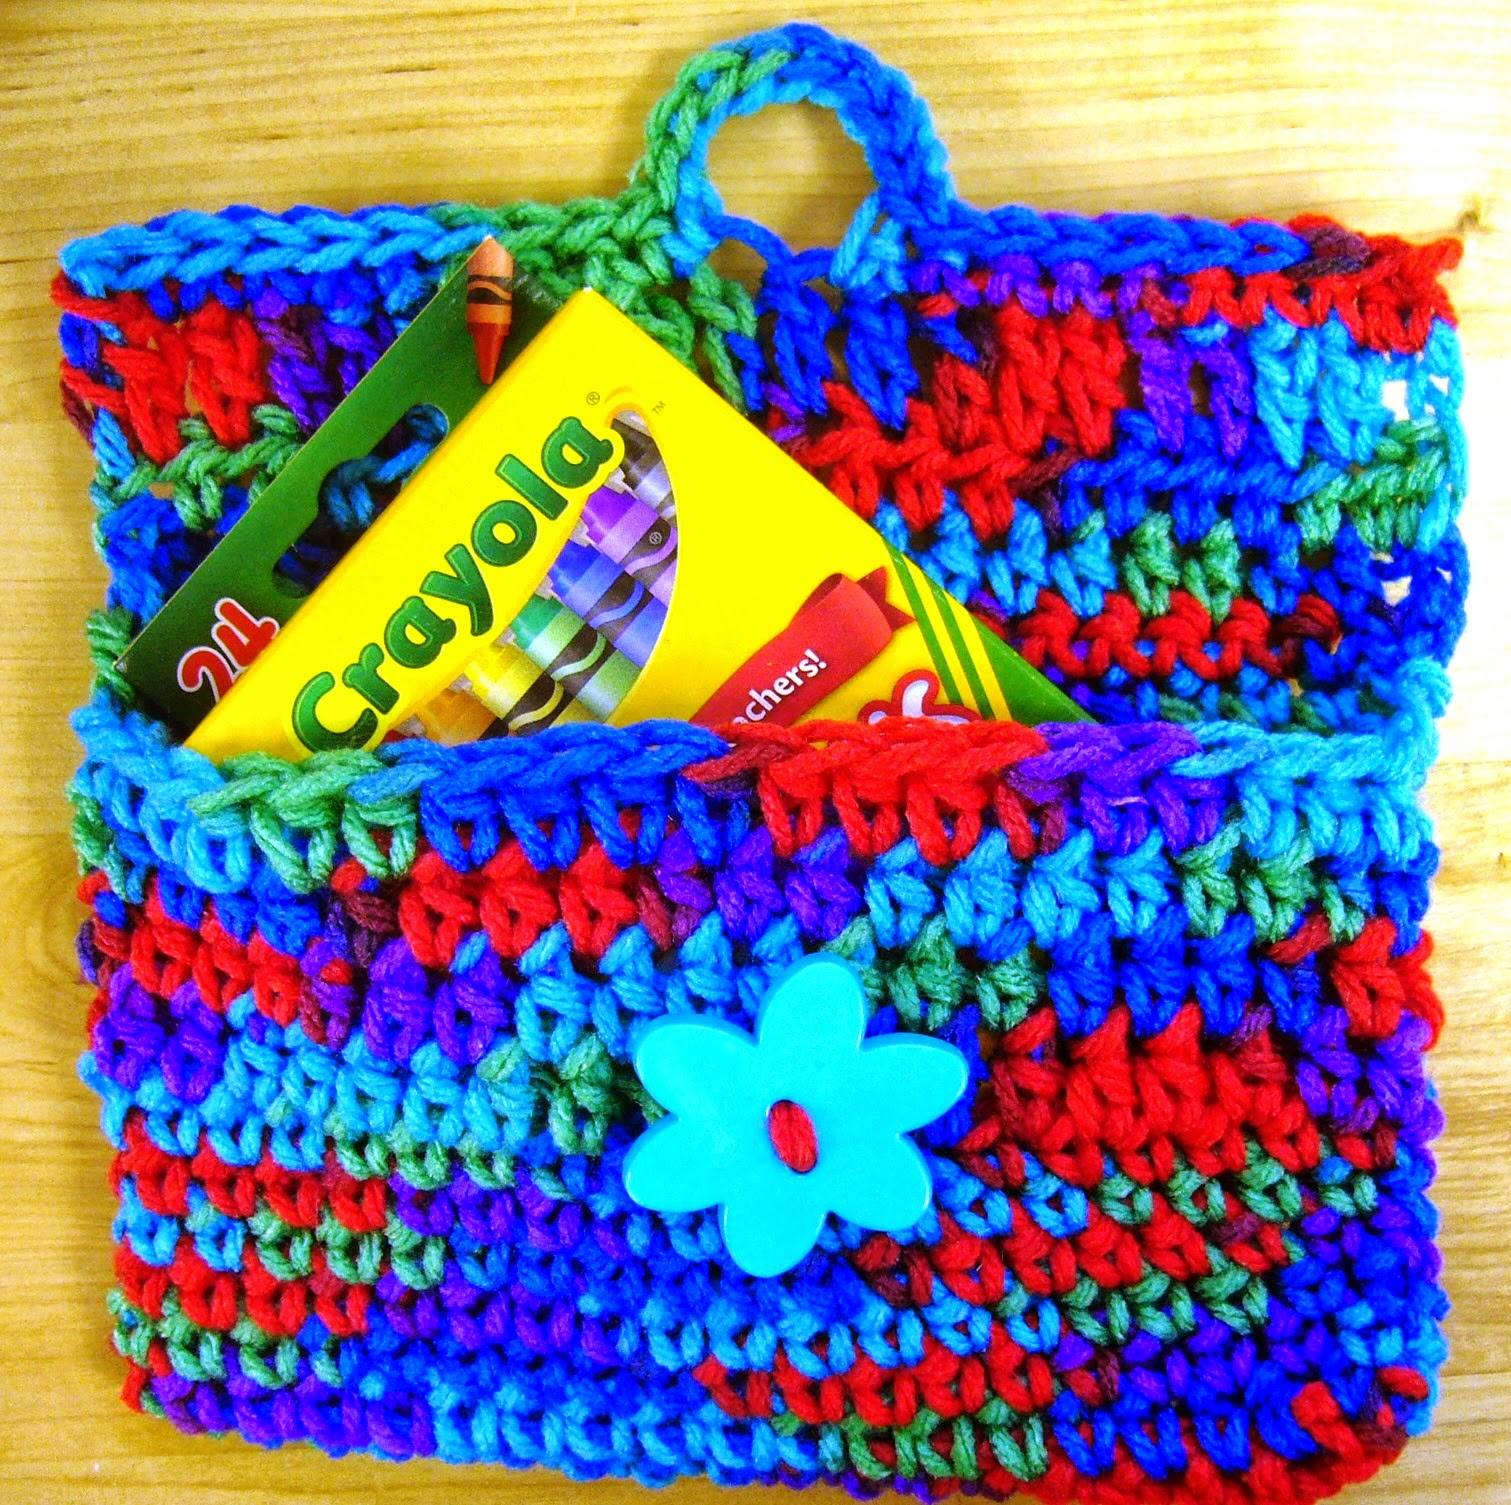 http://www.simplyshoeboxes.com/2015/03/mini-purse-or-wallet-crochet.html